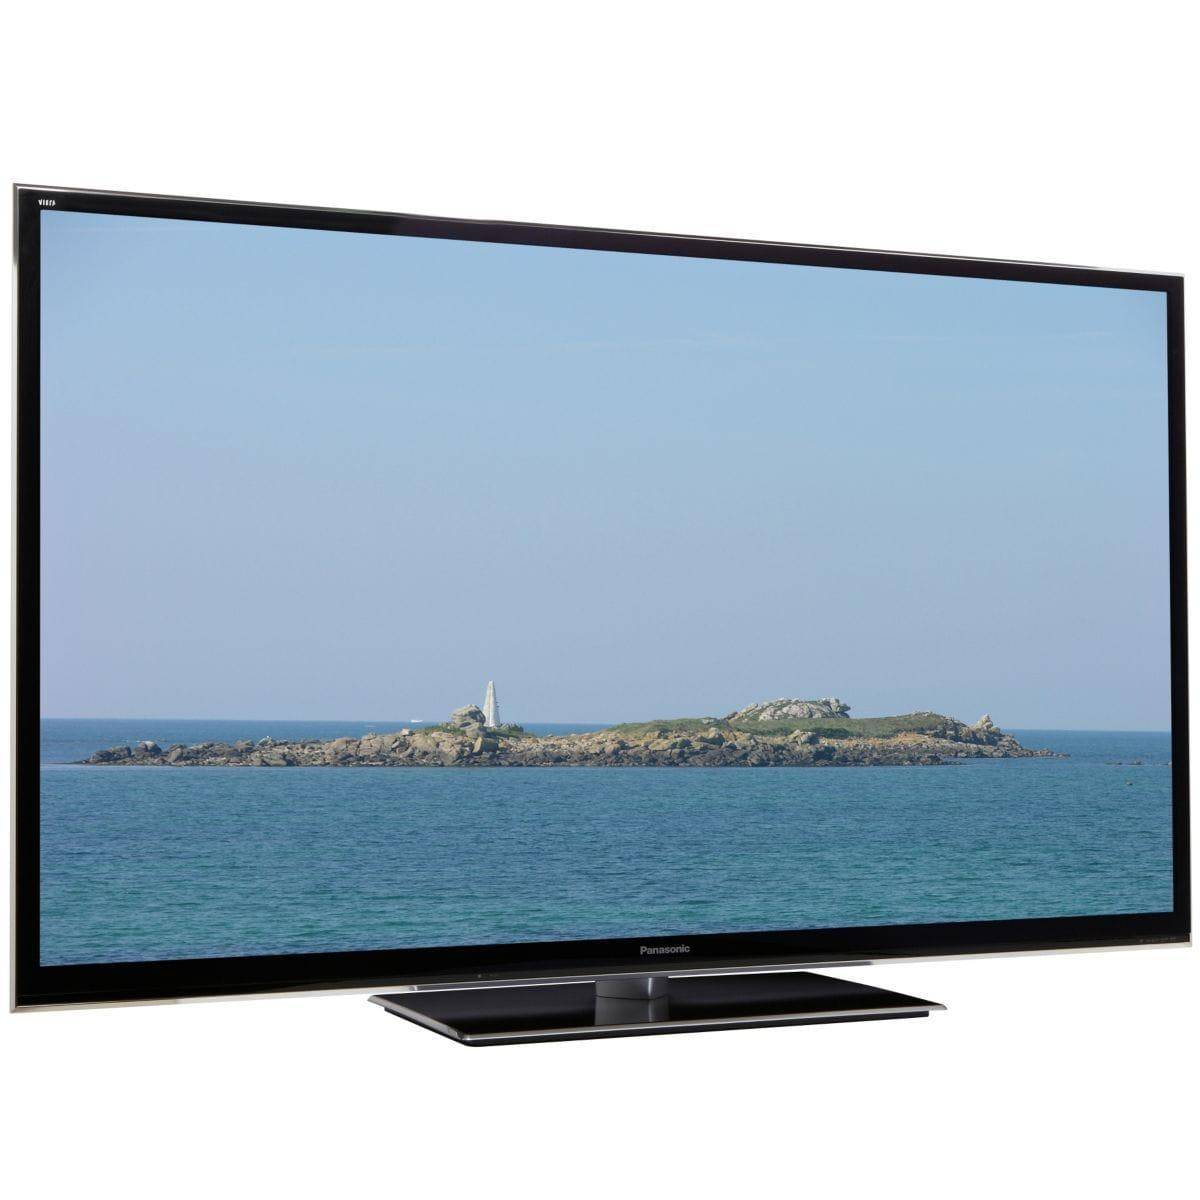 PANASONIC Smart TV Plasma 3D Full HD 165 cm PANASONIC TX-P65VT50E Reconditionné à neuf